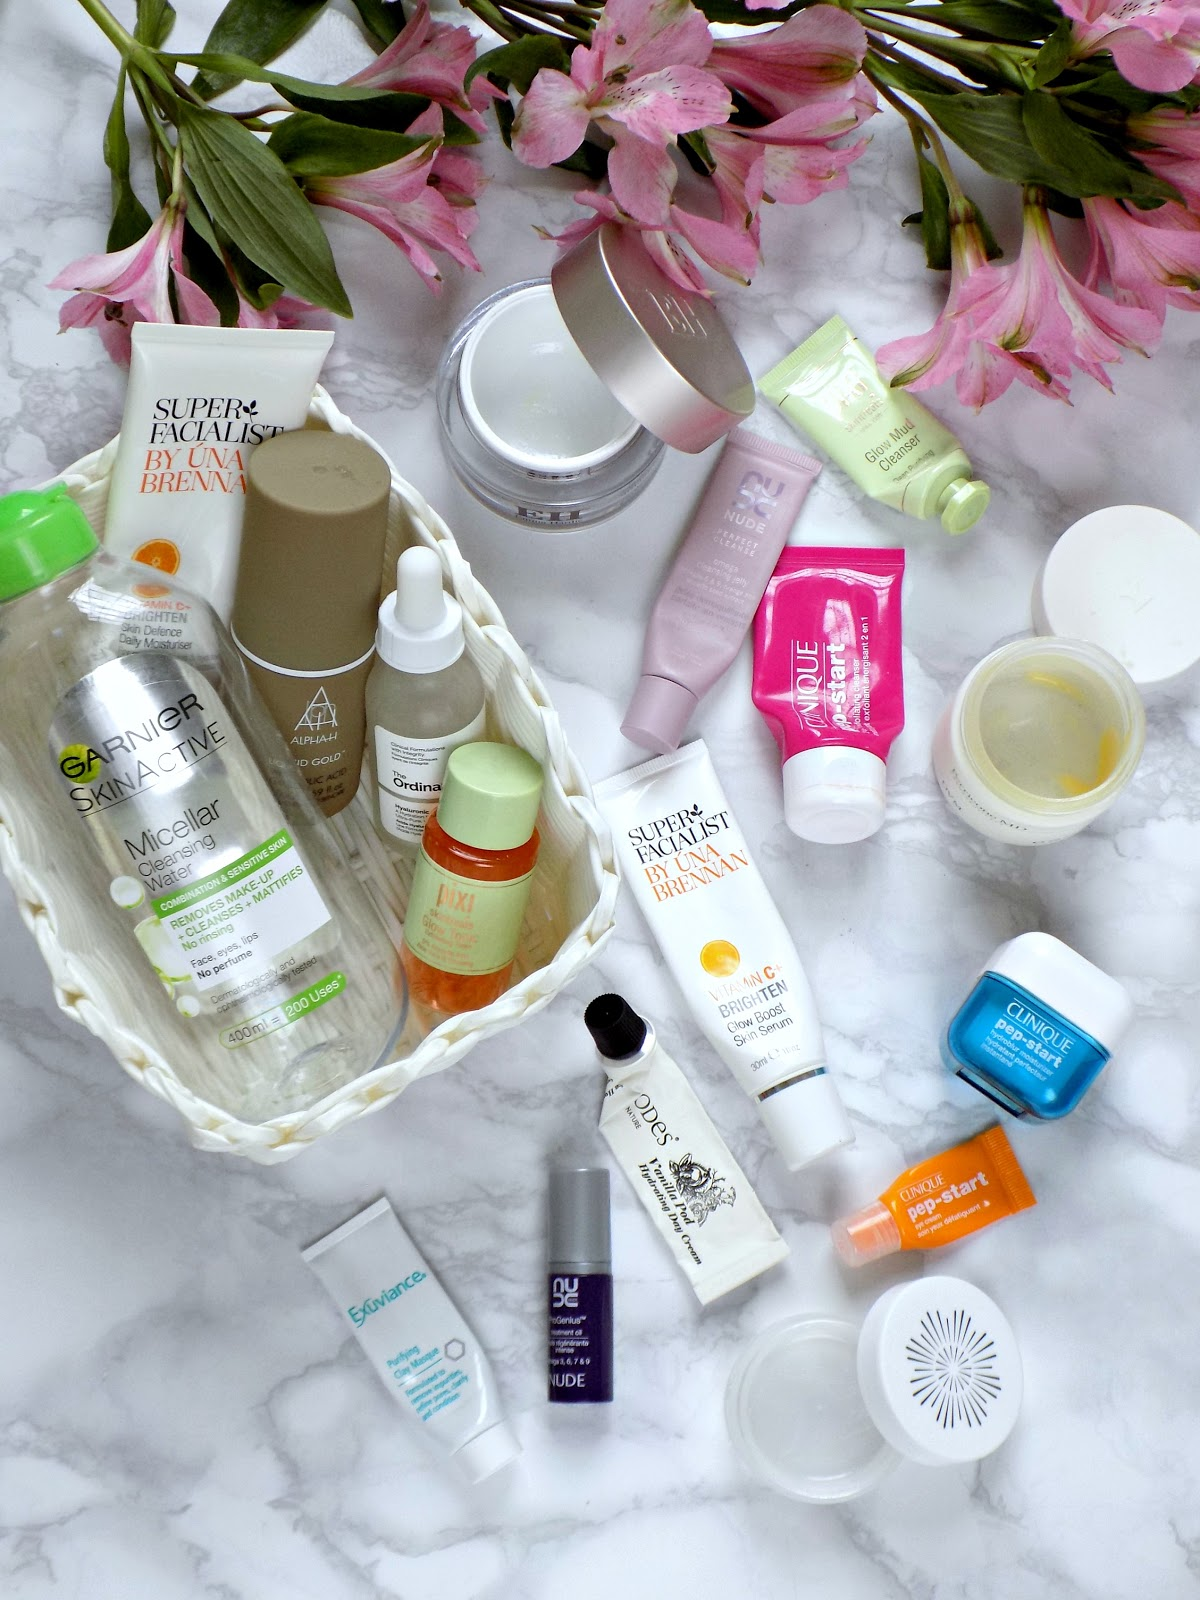 Skincare products I've used up lately